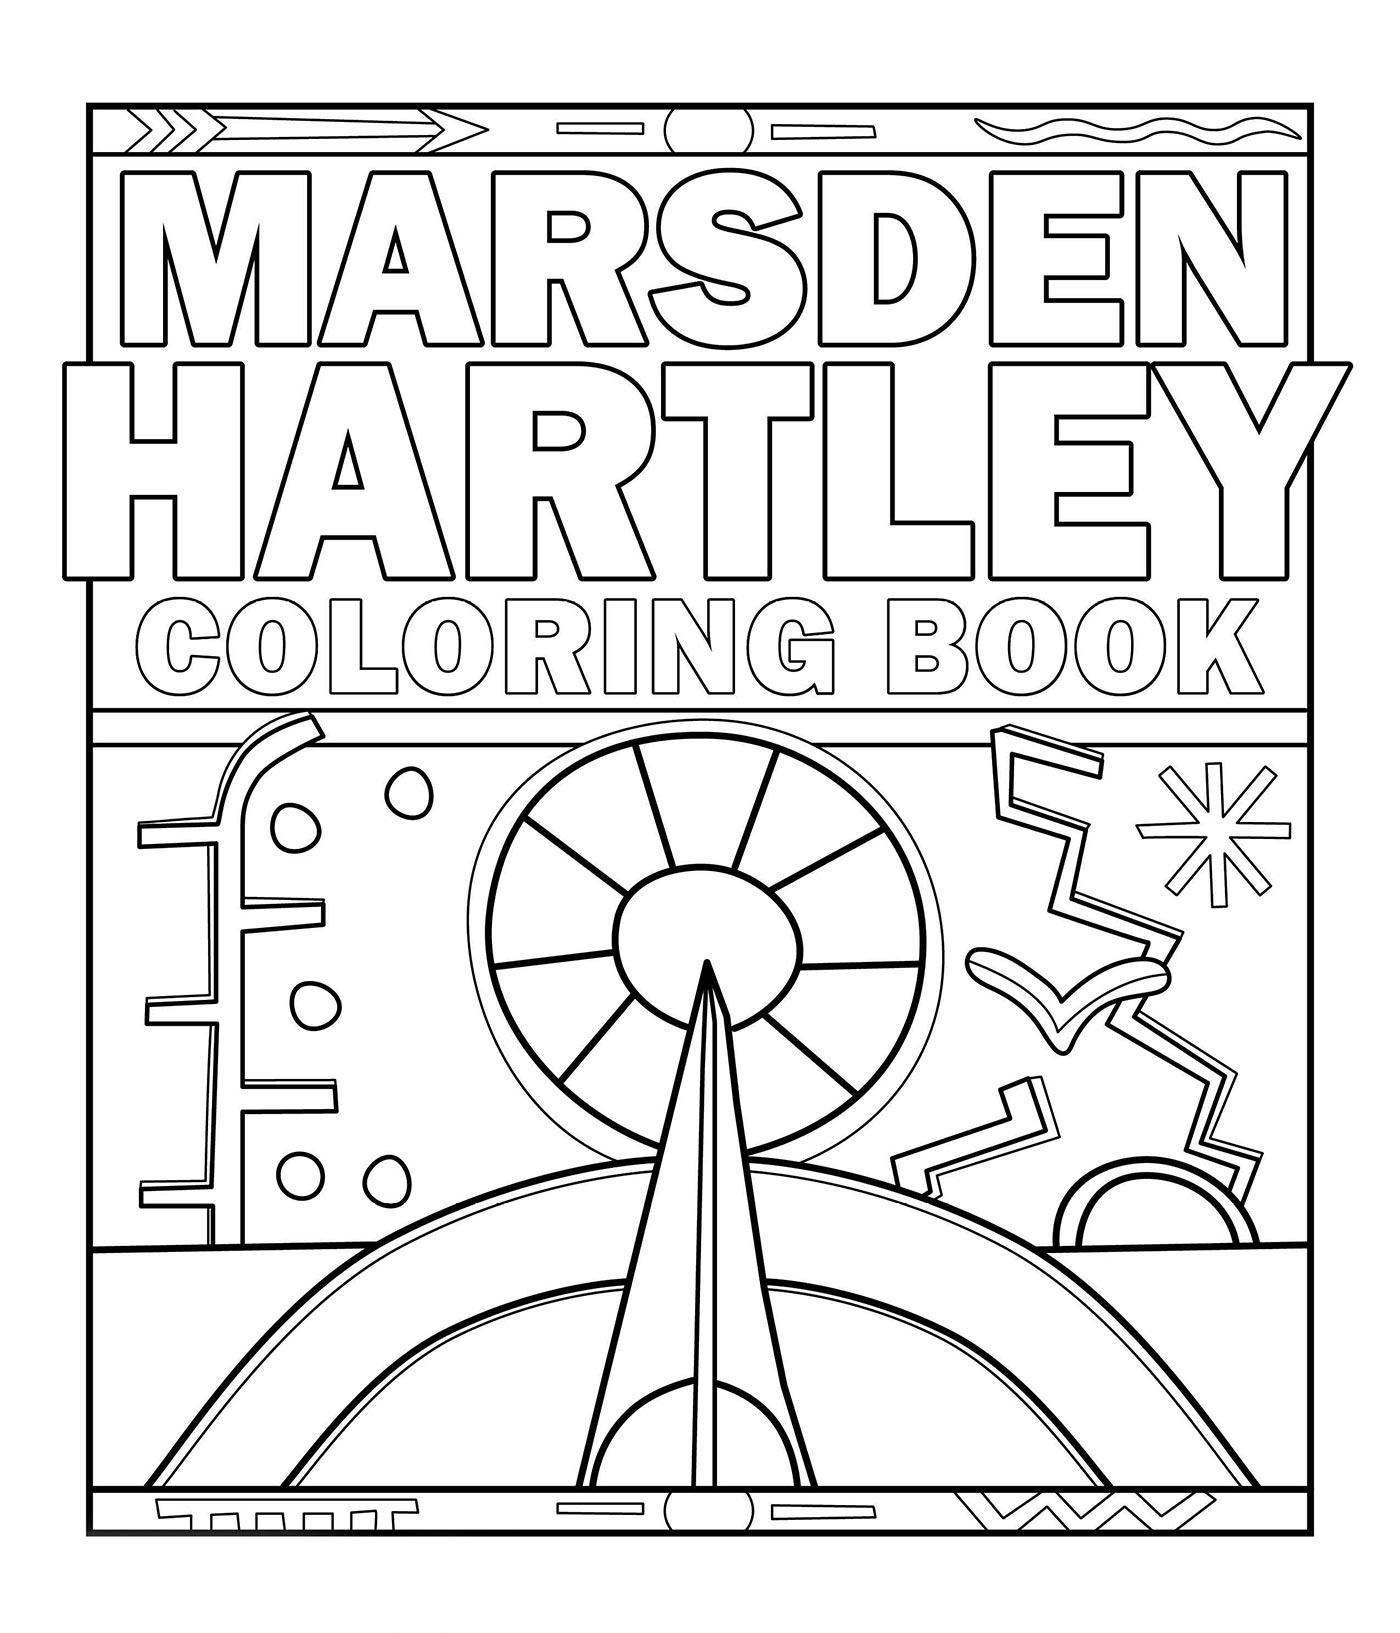 Marsden Hartley Coloring Book